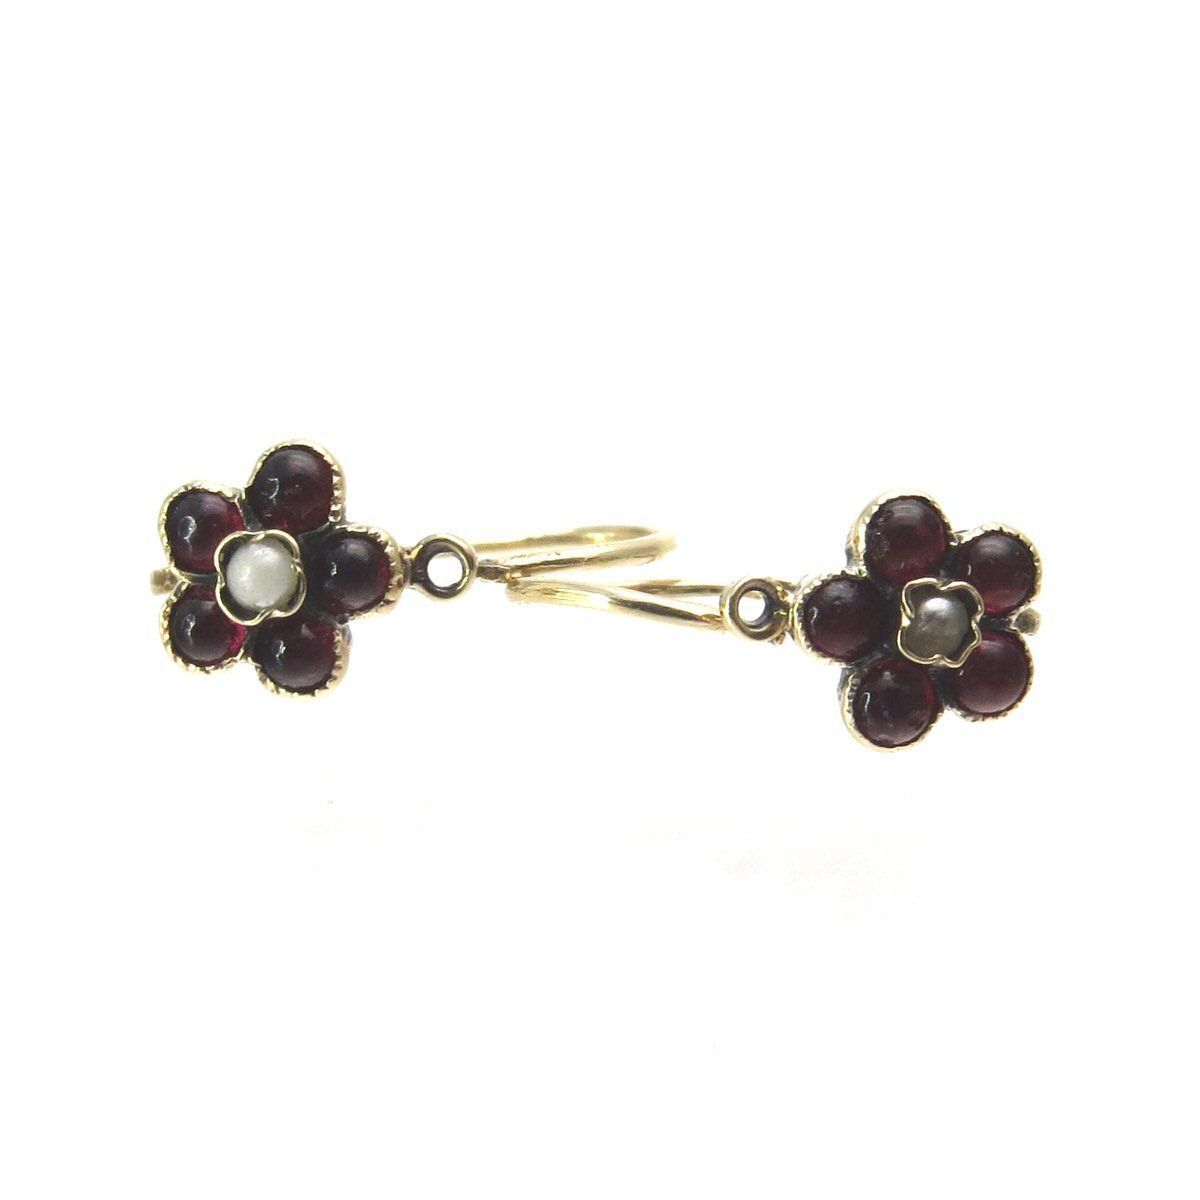 2f9beb79b Diminutive Victorian Earrings Garnet Seed Pearl 14k Gold, Victorian, 1830s  to 1900s These tiny flower earrings are made of solid 14k gold.